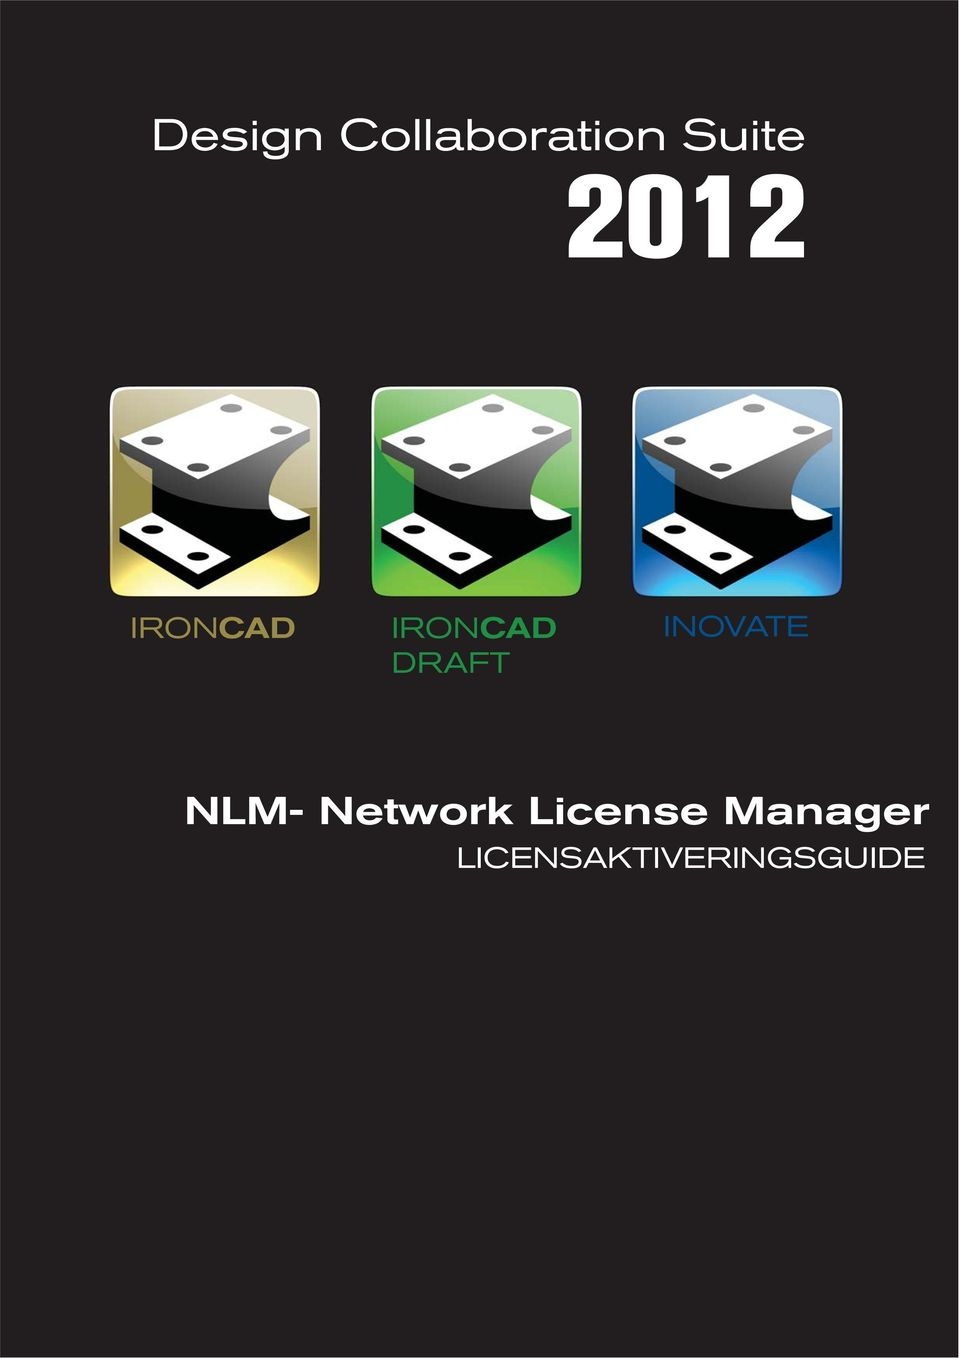 INOVATE NLM- Network License